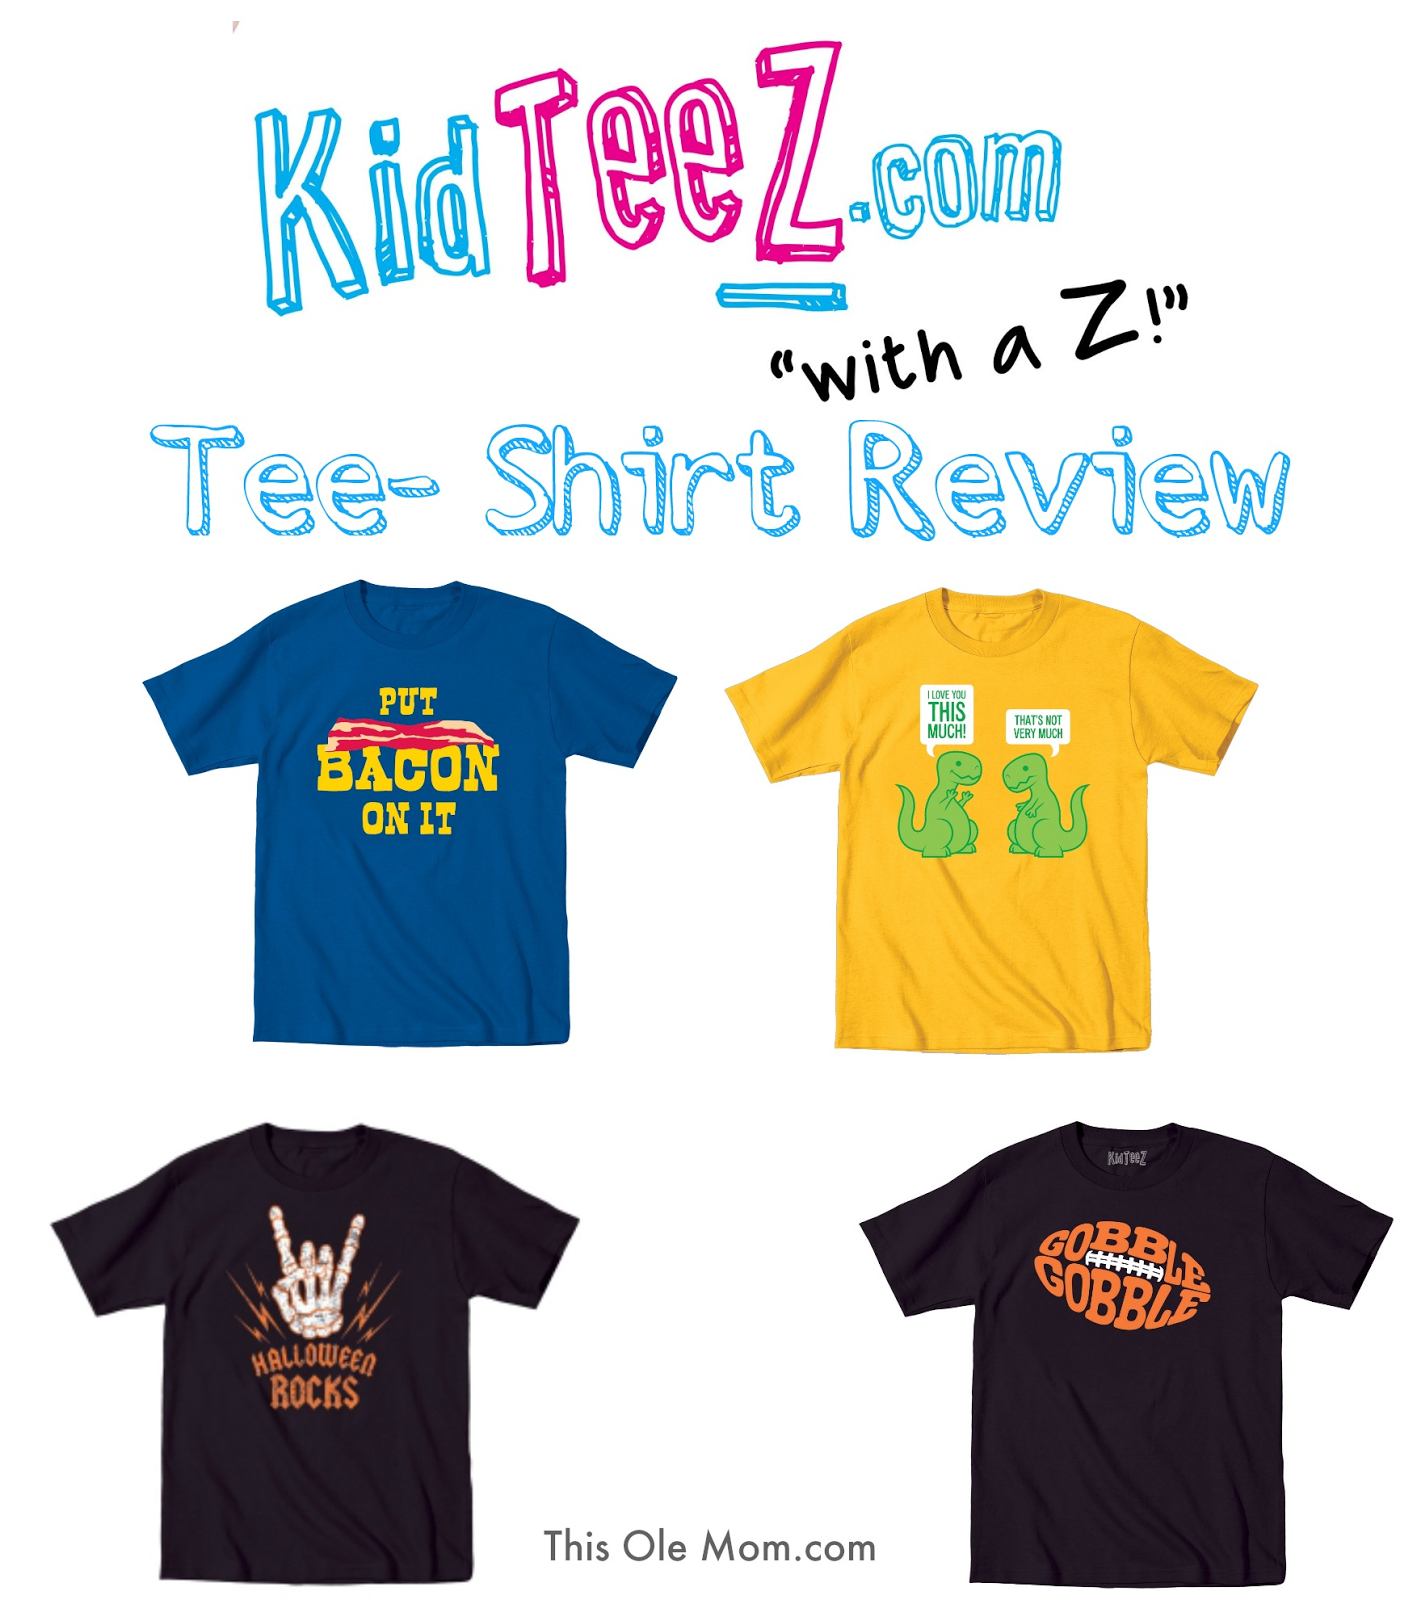 KidTeez.com Review, T-Shirts, Kids Tees, T-Shirts, Halloween T-Shirts, Birthday T-Shirts, Thanksgiving T-Shirts